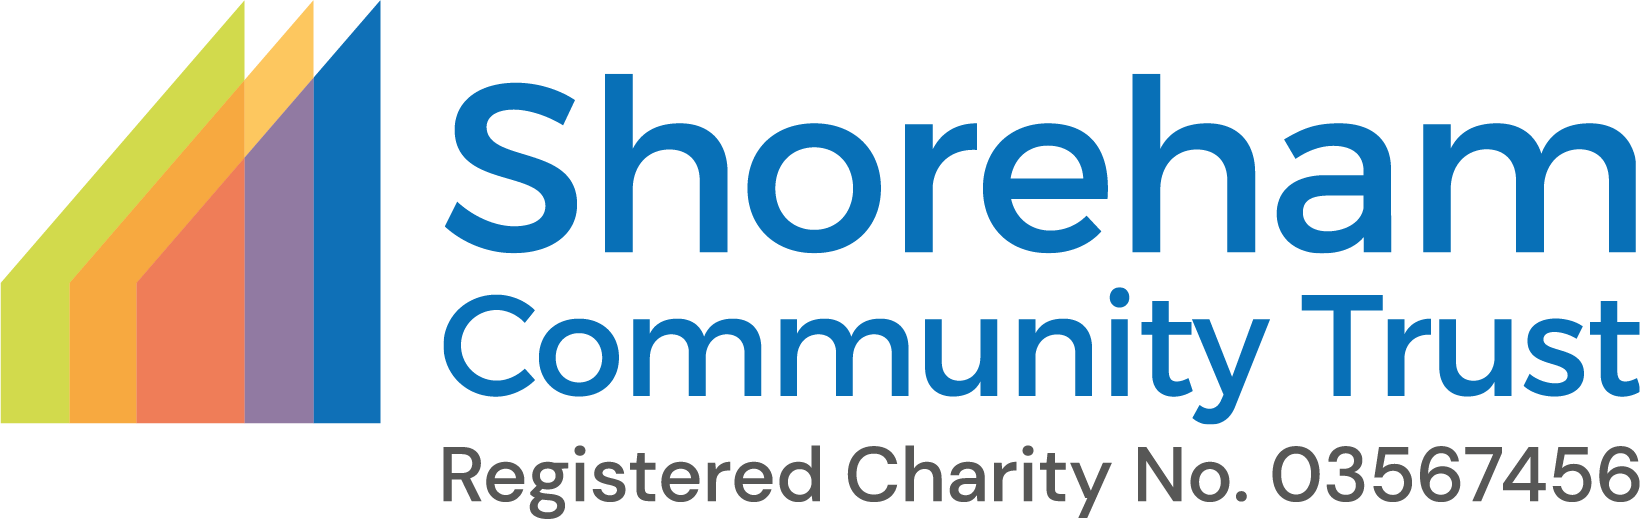 Shoreham Community Trust